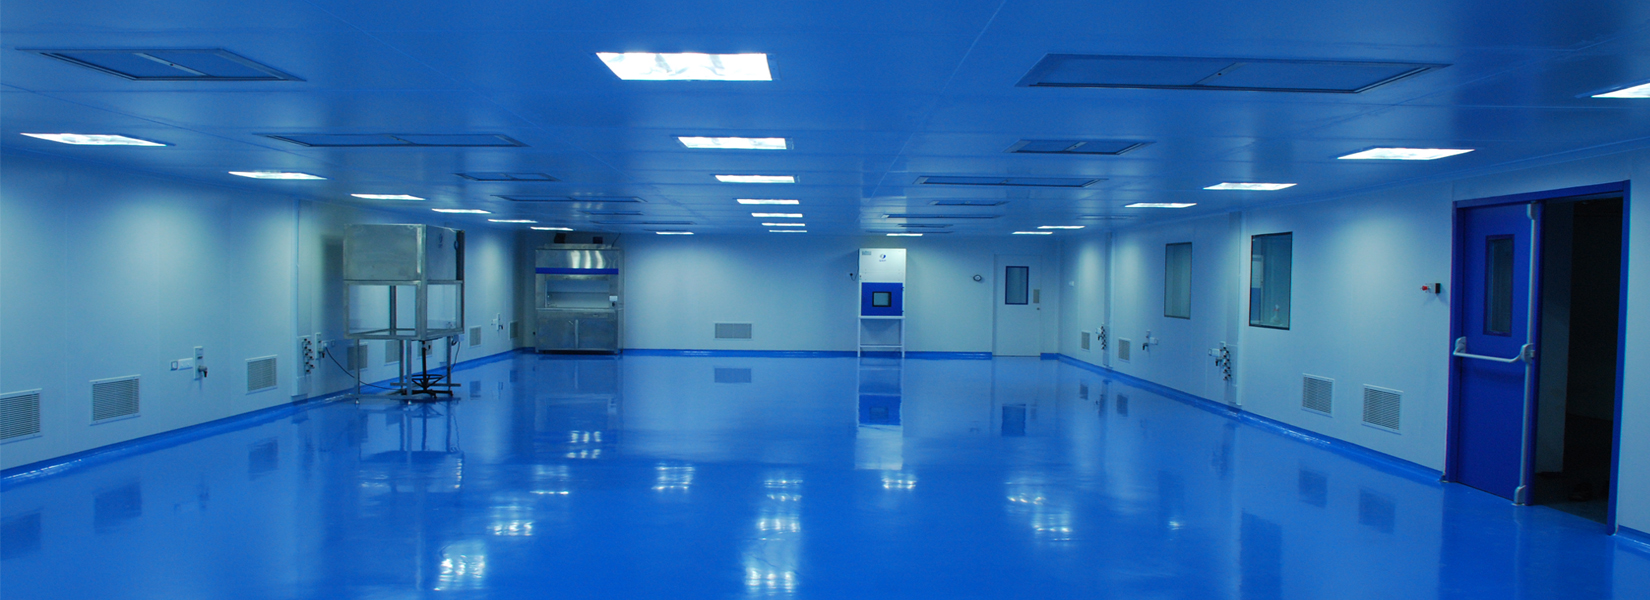 Construction Clean Room Floor : Clean rooms containments